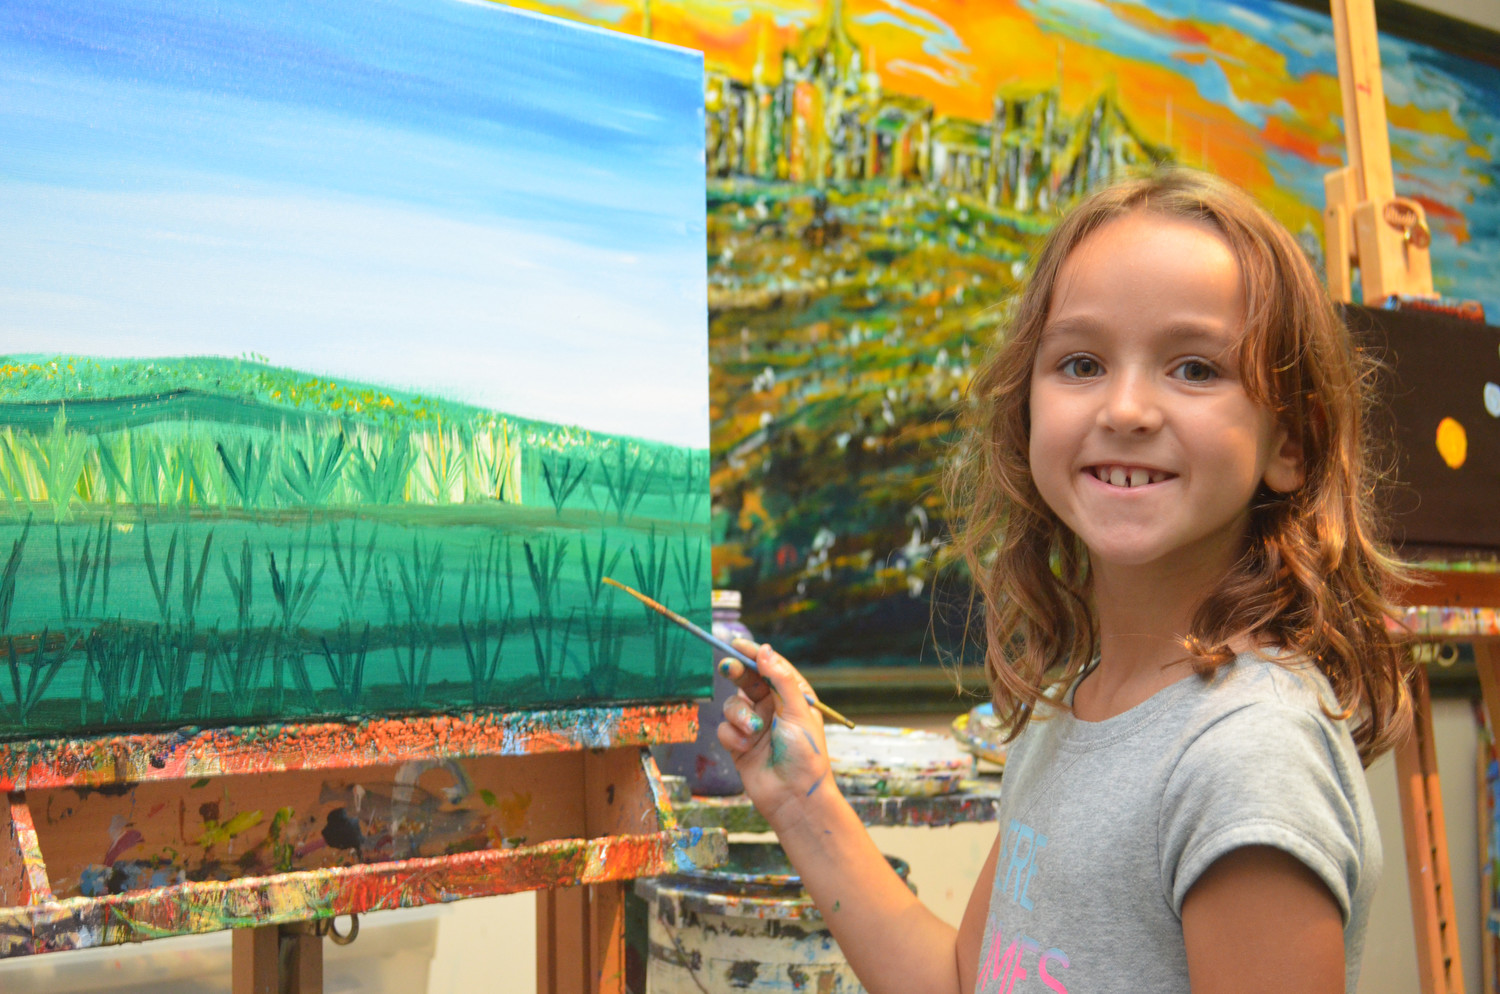 Veronica Chmiel, 6, painted a scene at the Creative Art Space for Kids in Lynbrook.